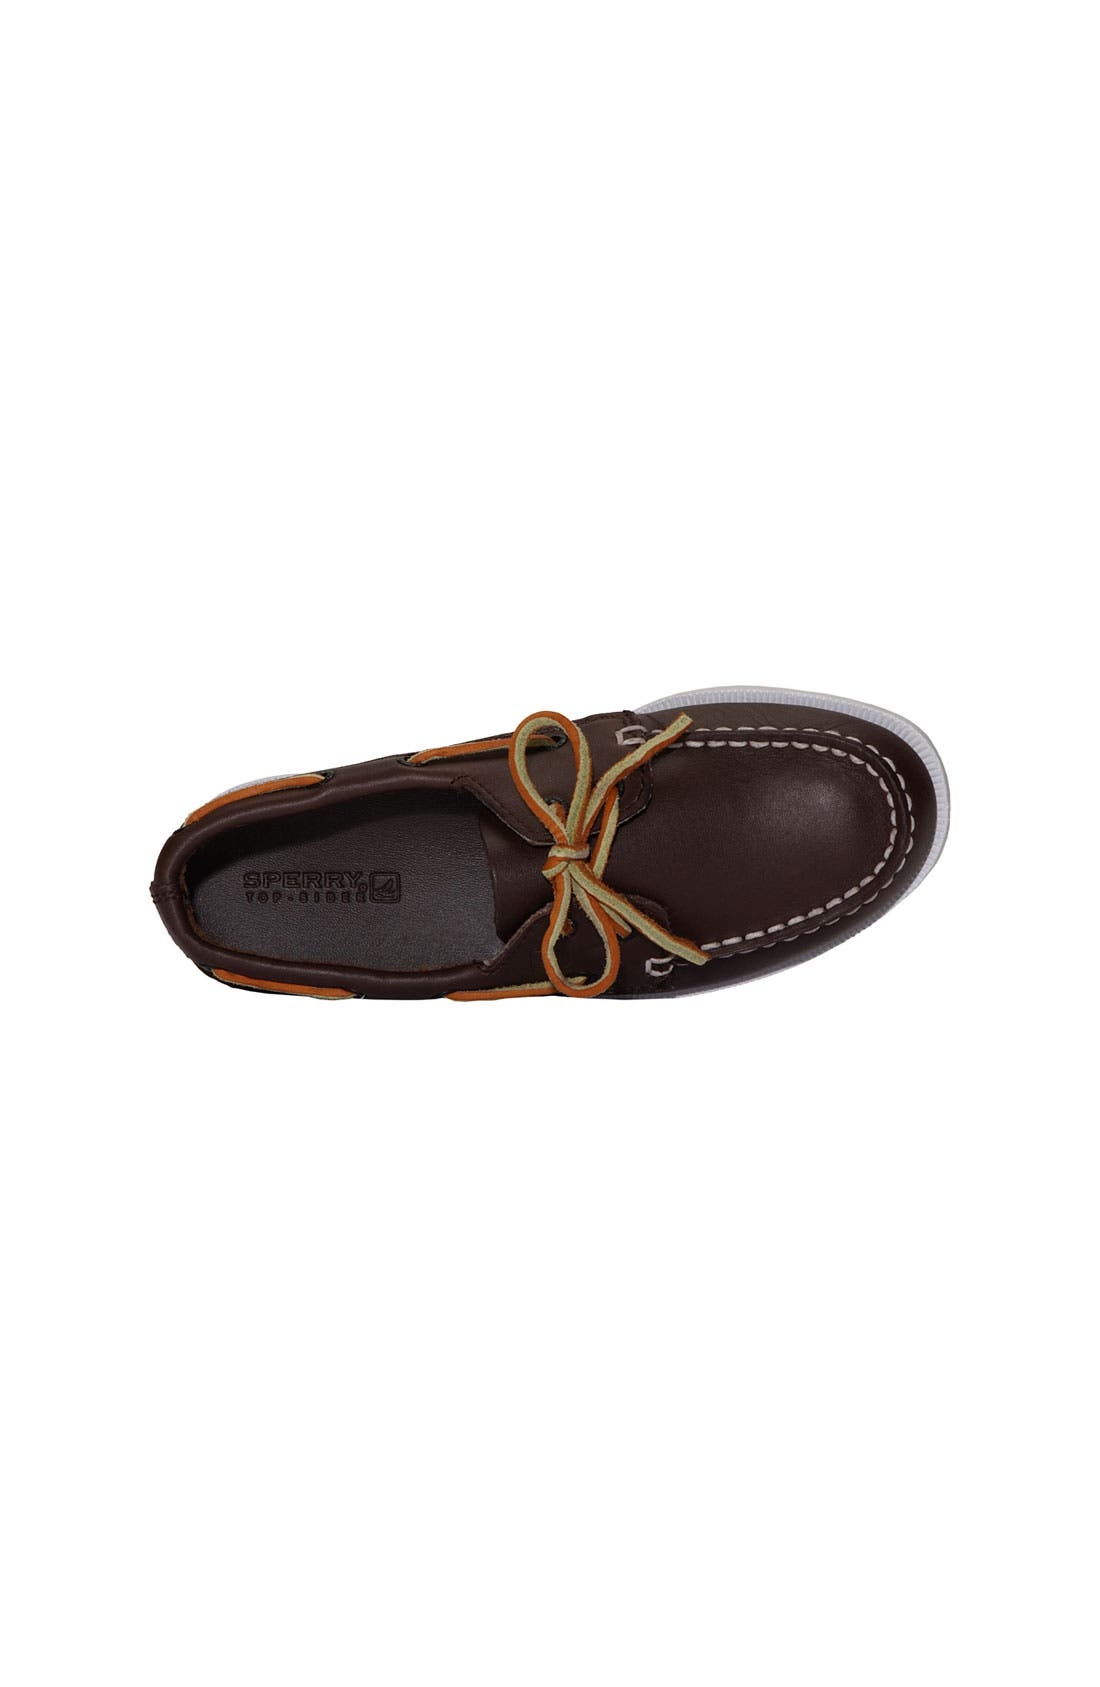 SPERRY KIDS,                             'Authentic Original' Boat Shoe,                             Alternate thumbnail 10, color,                             BROWN LEATHER